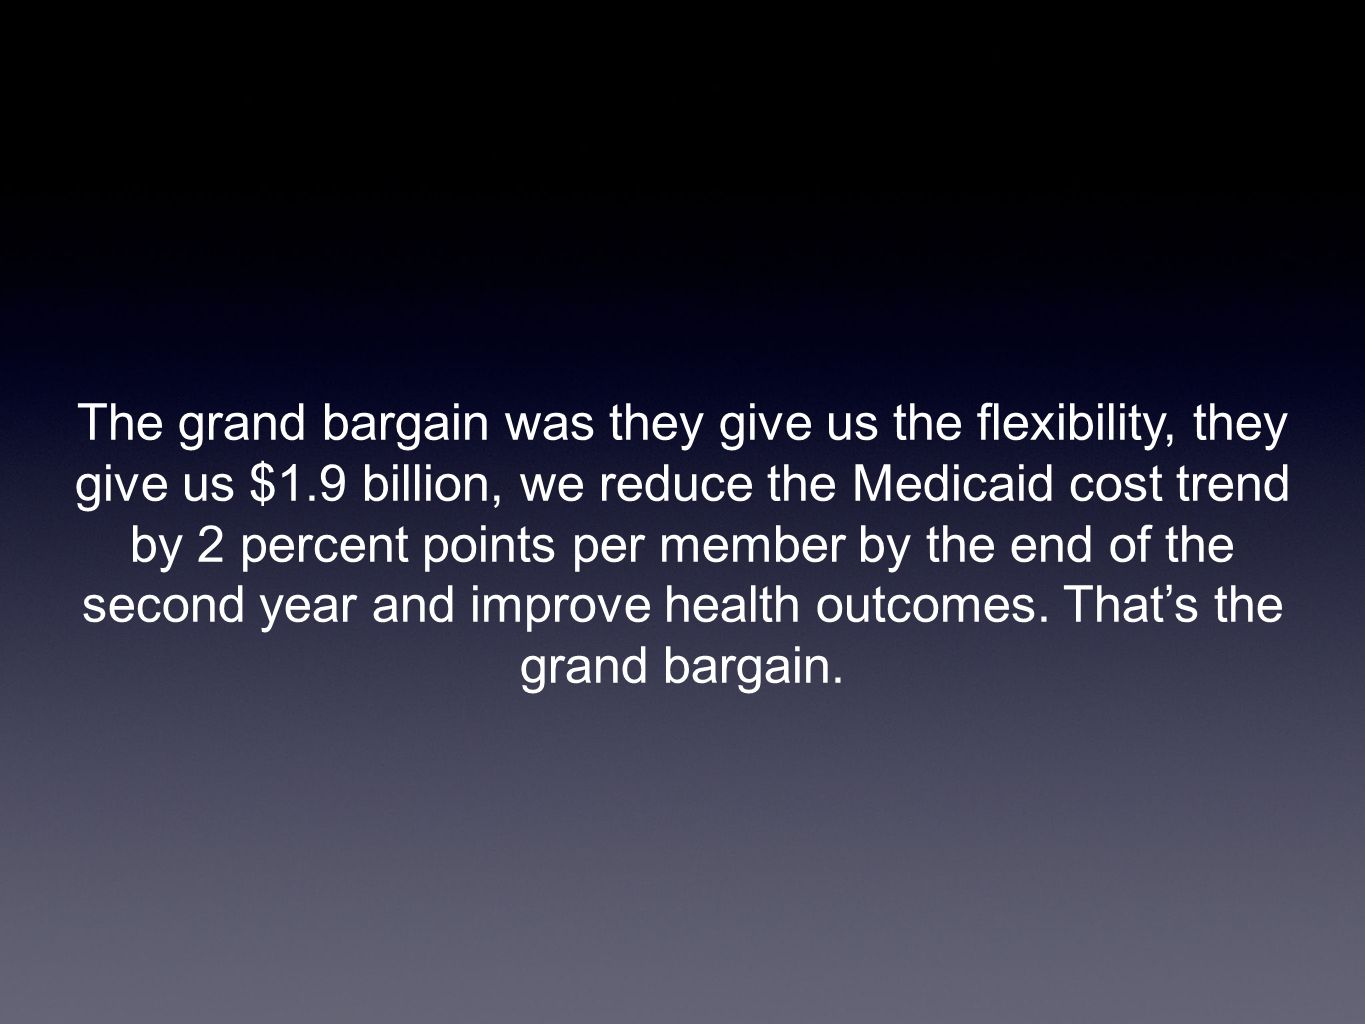 The grand bargain was they give us the flexibility, they give us $1.9 billion, we reduce the Medicaid cost trend by 2 percent points per member by the